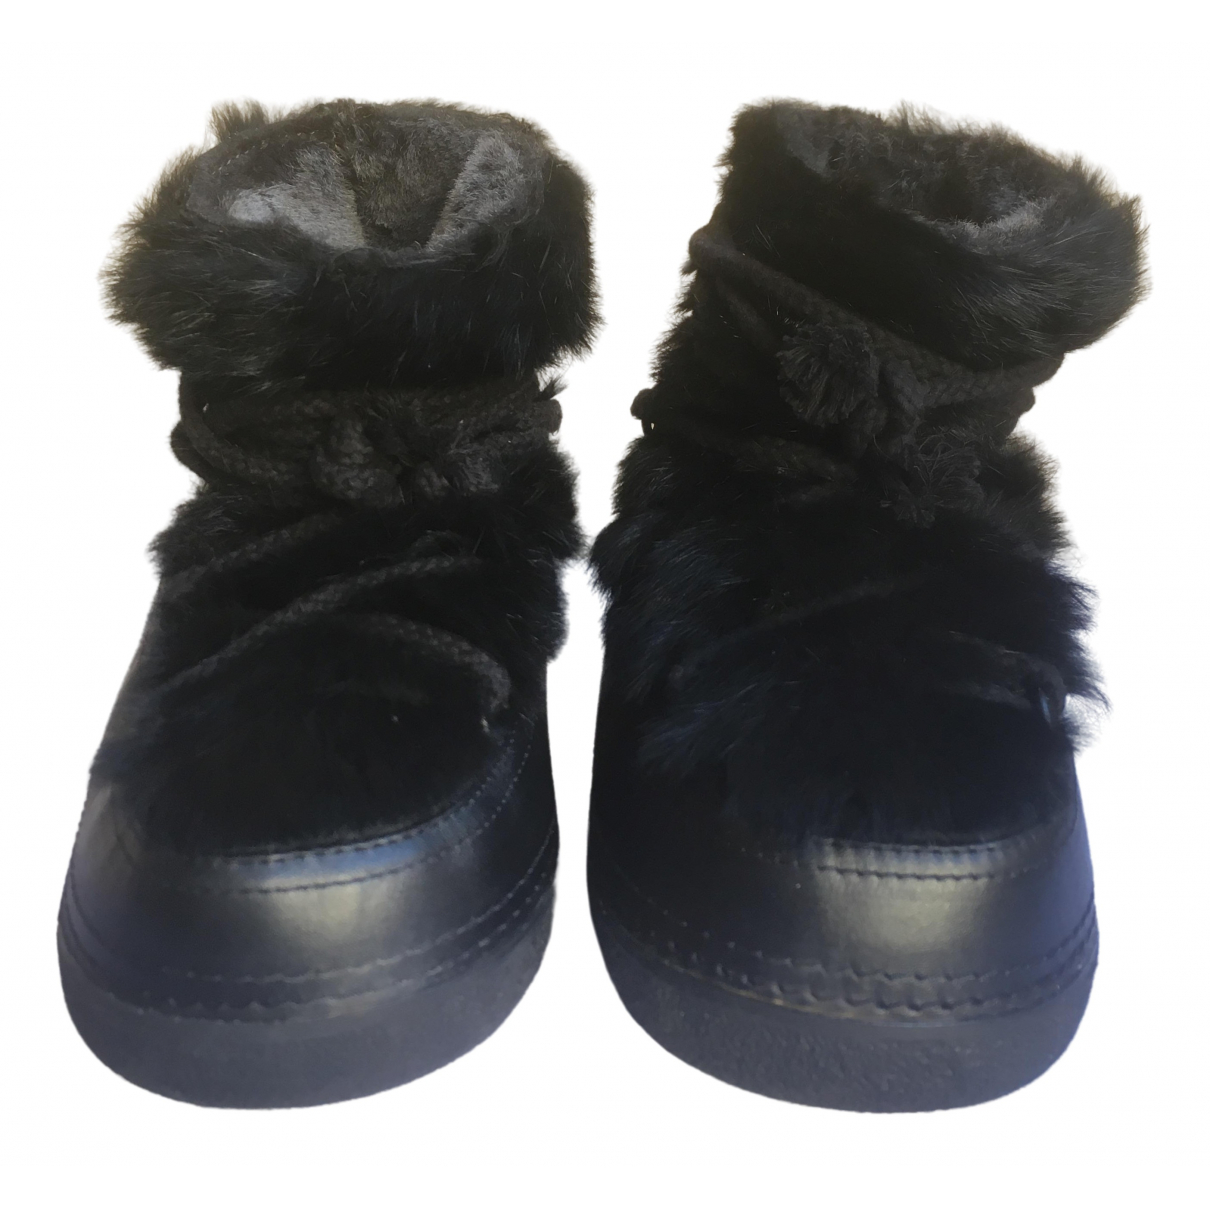 Ikkii \N Black Fur Boots for Women 37 EU